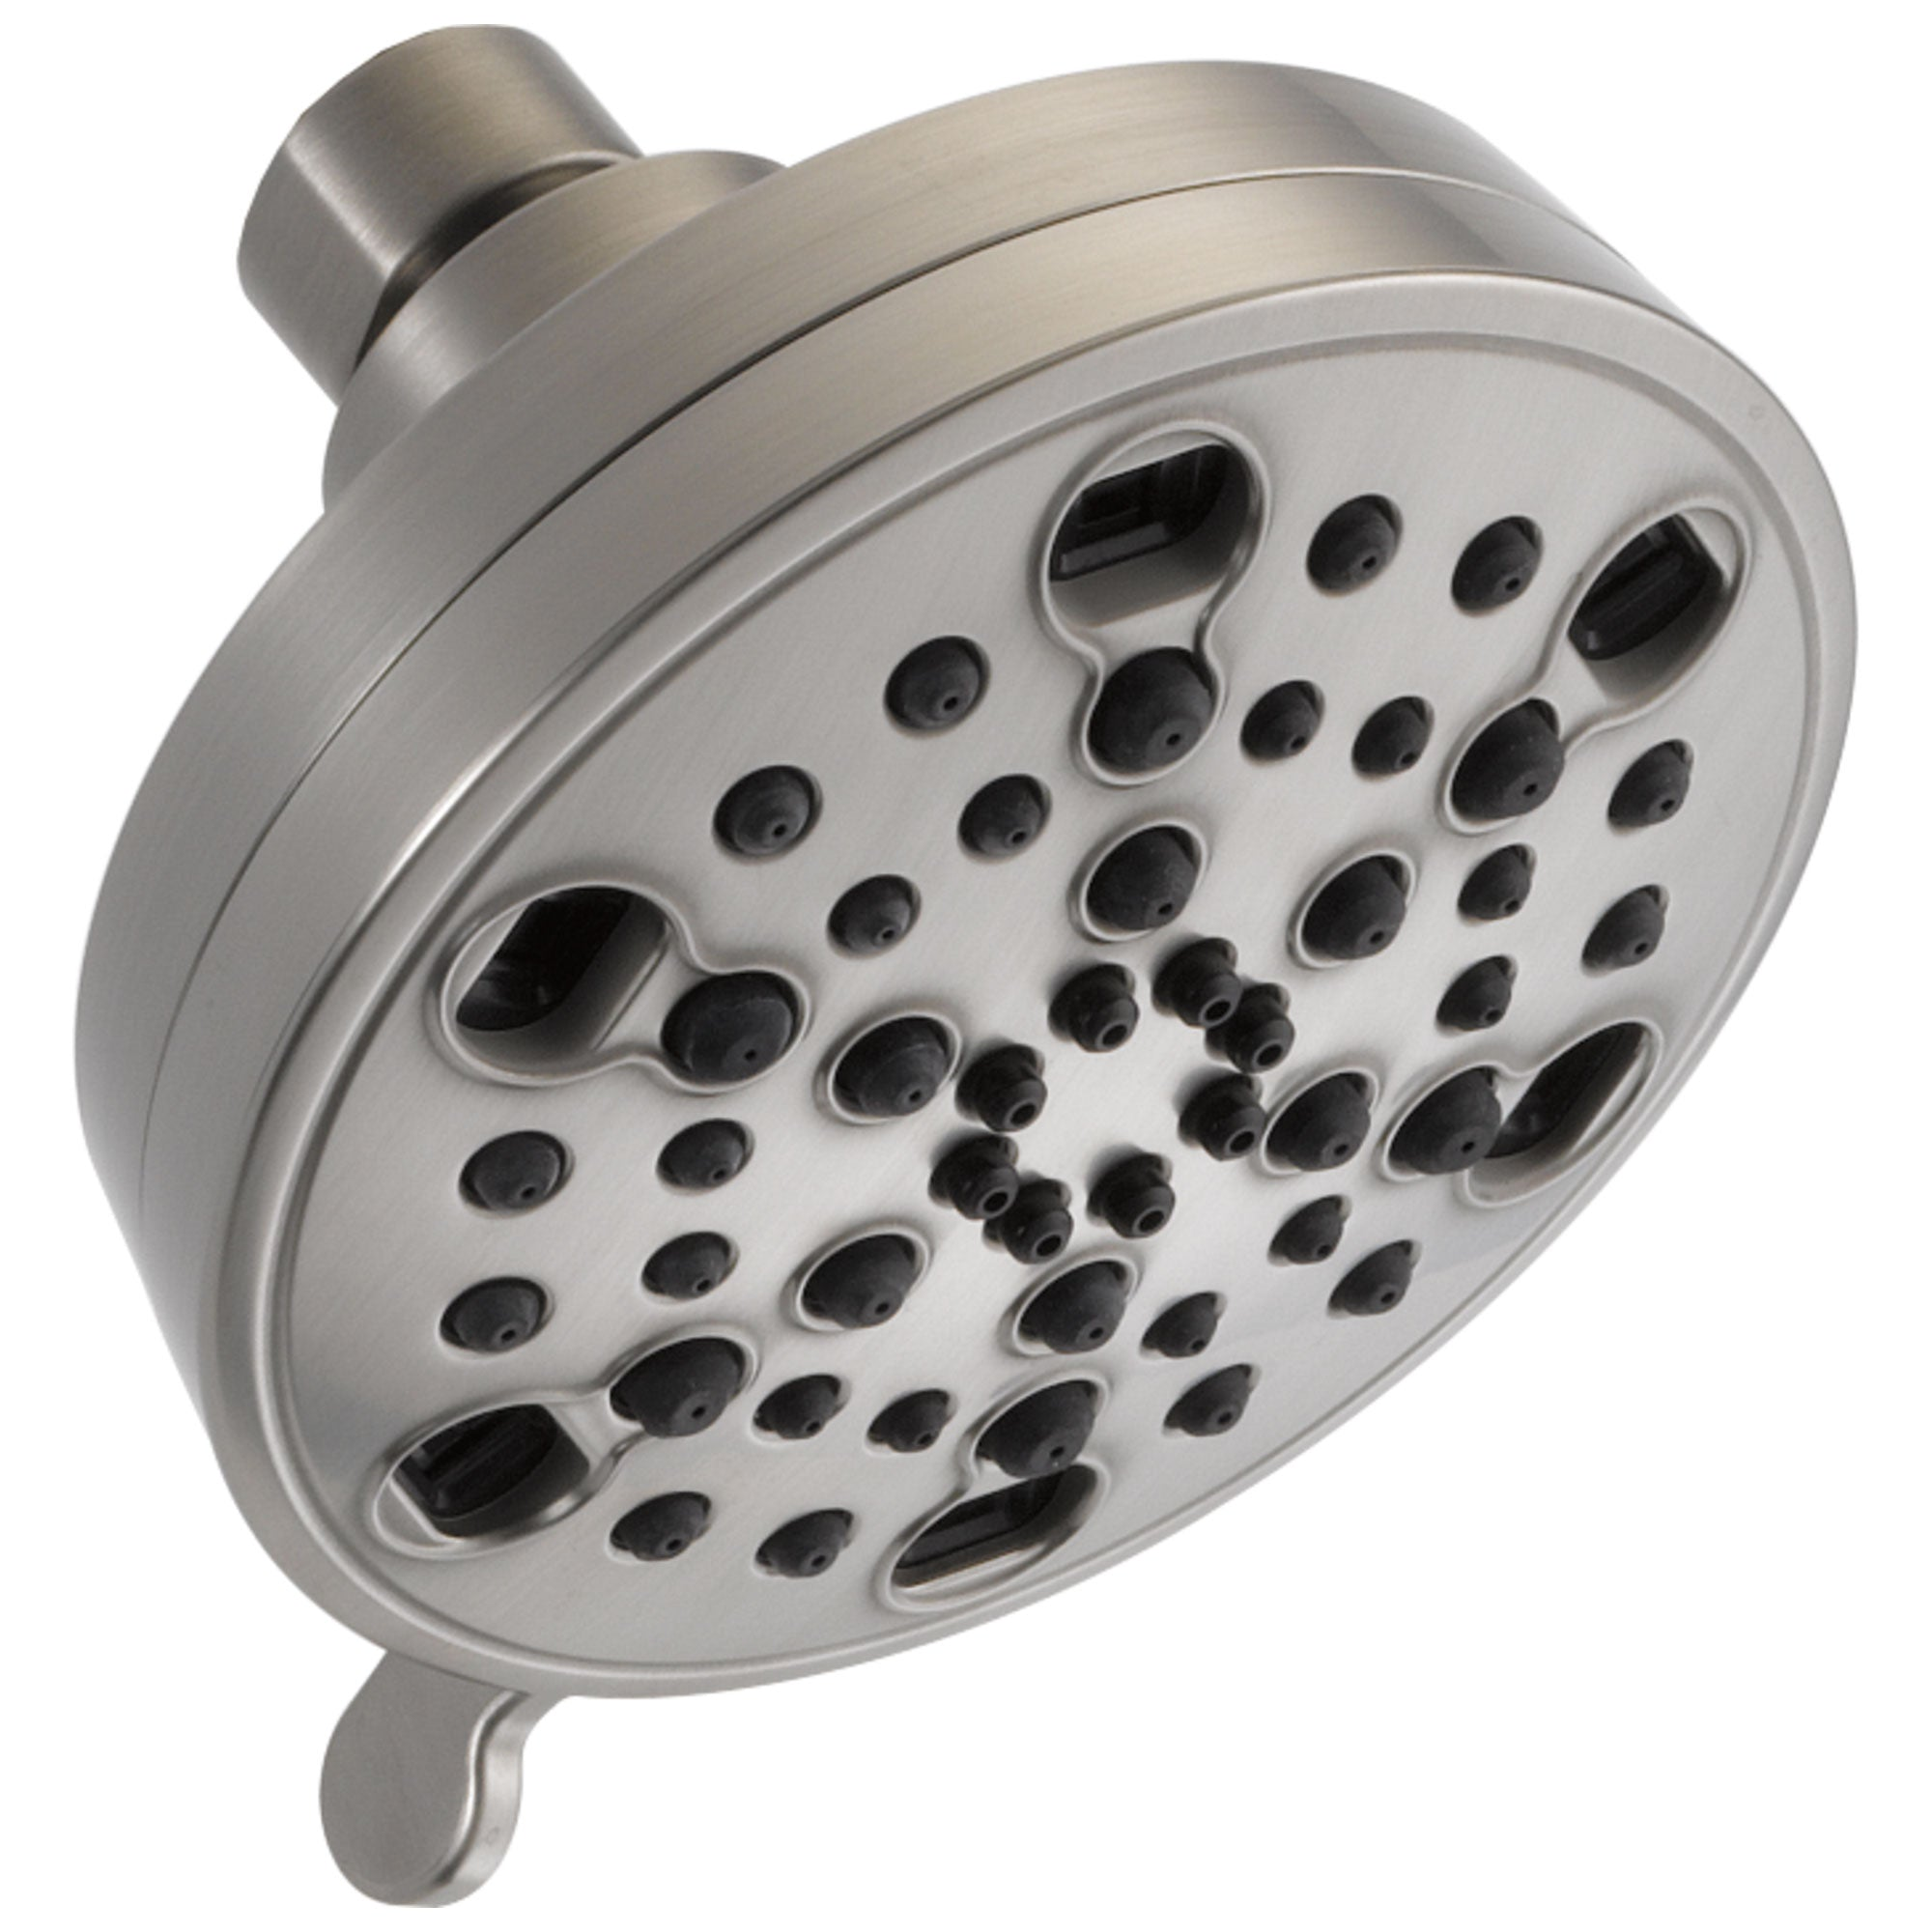 Delta Universal Showering Components Collection Stainless Steel Finish H2Okinetic 5-Setting Contemporary Shower Head D52638SS20PK